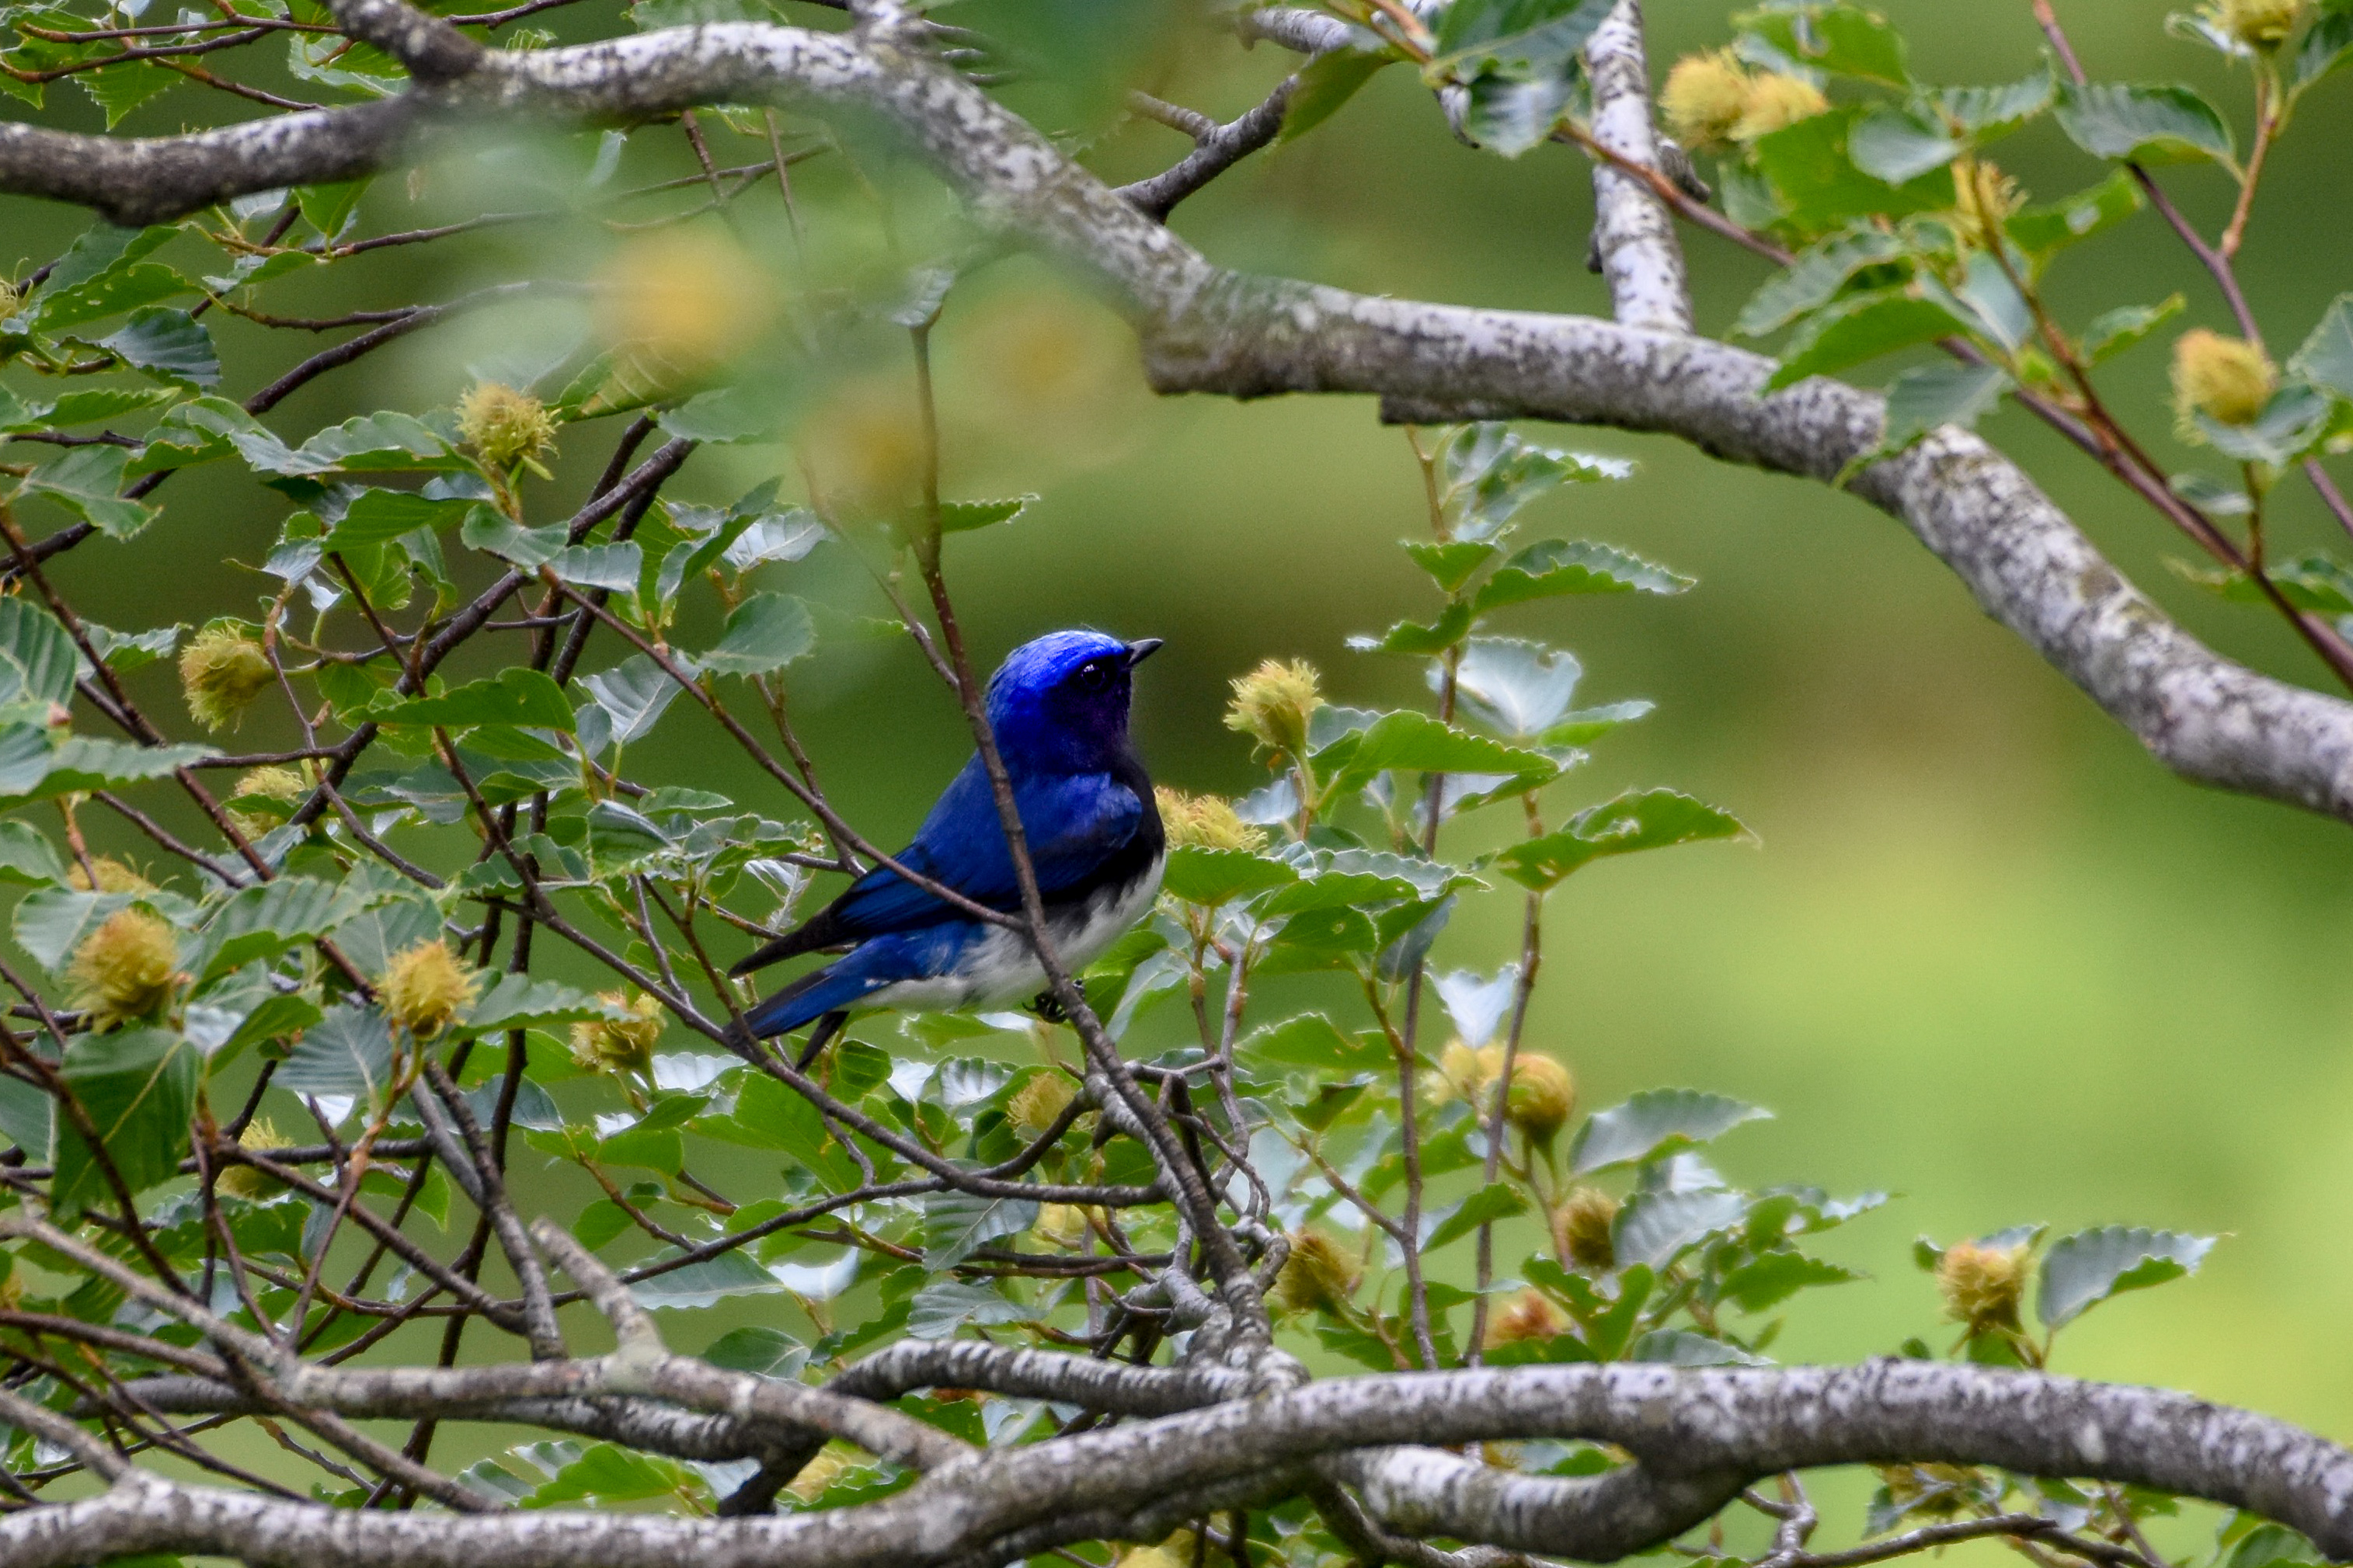 オオルリBlue-and-white Flycatcher